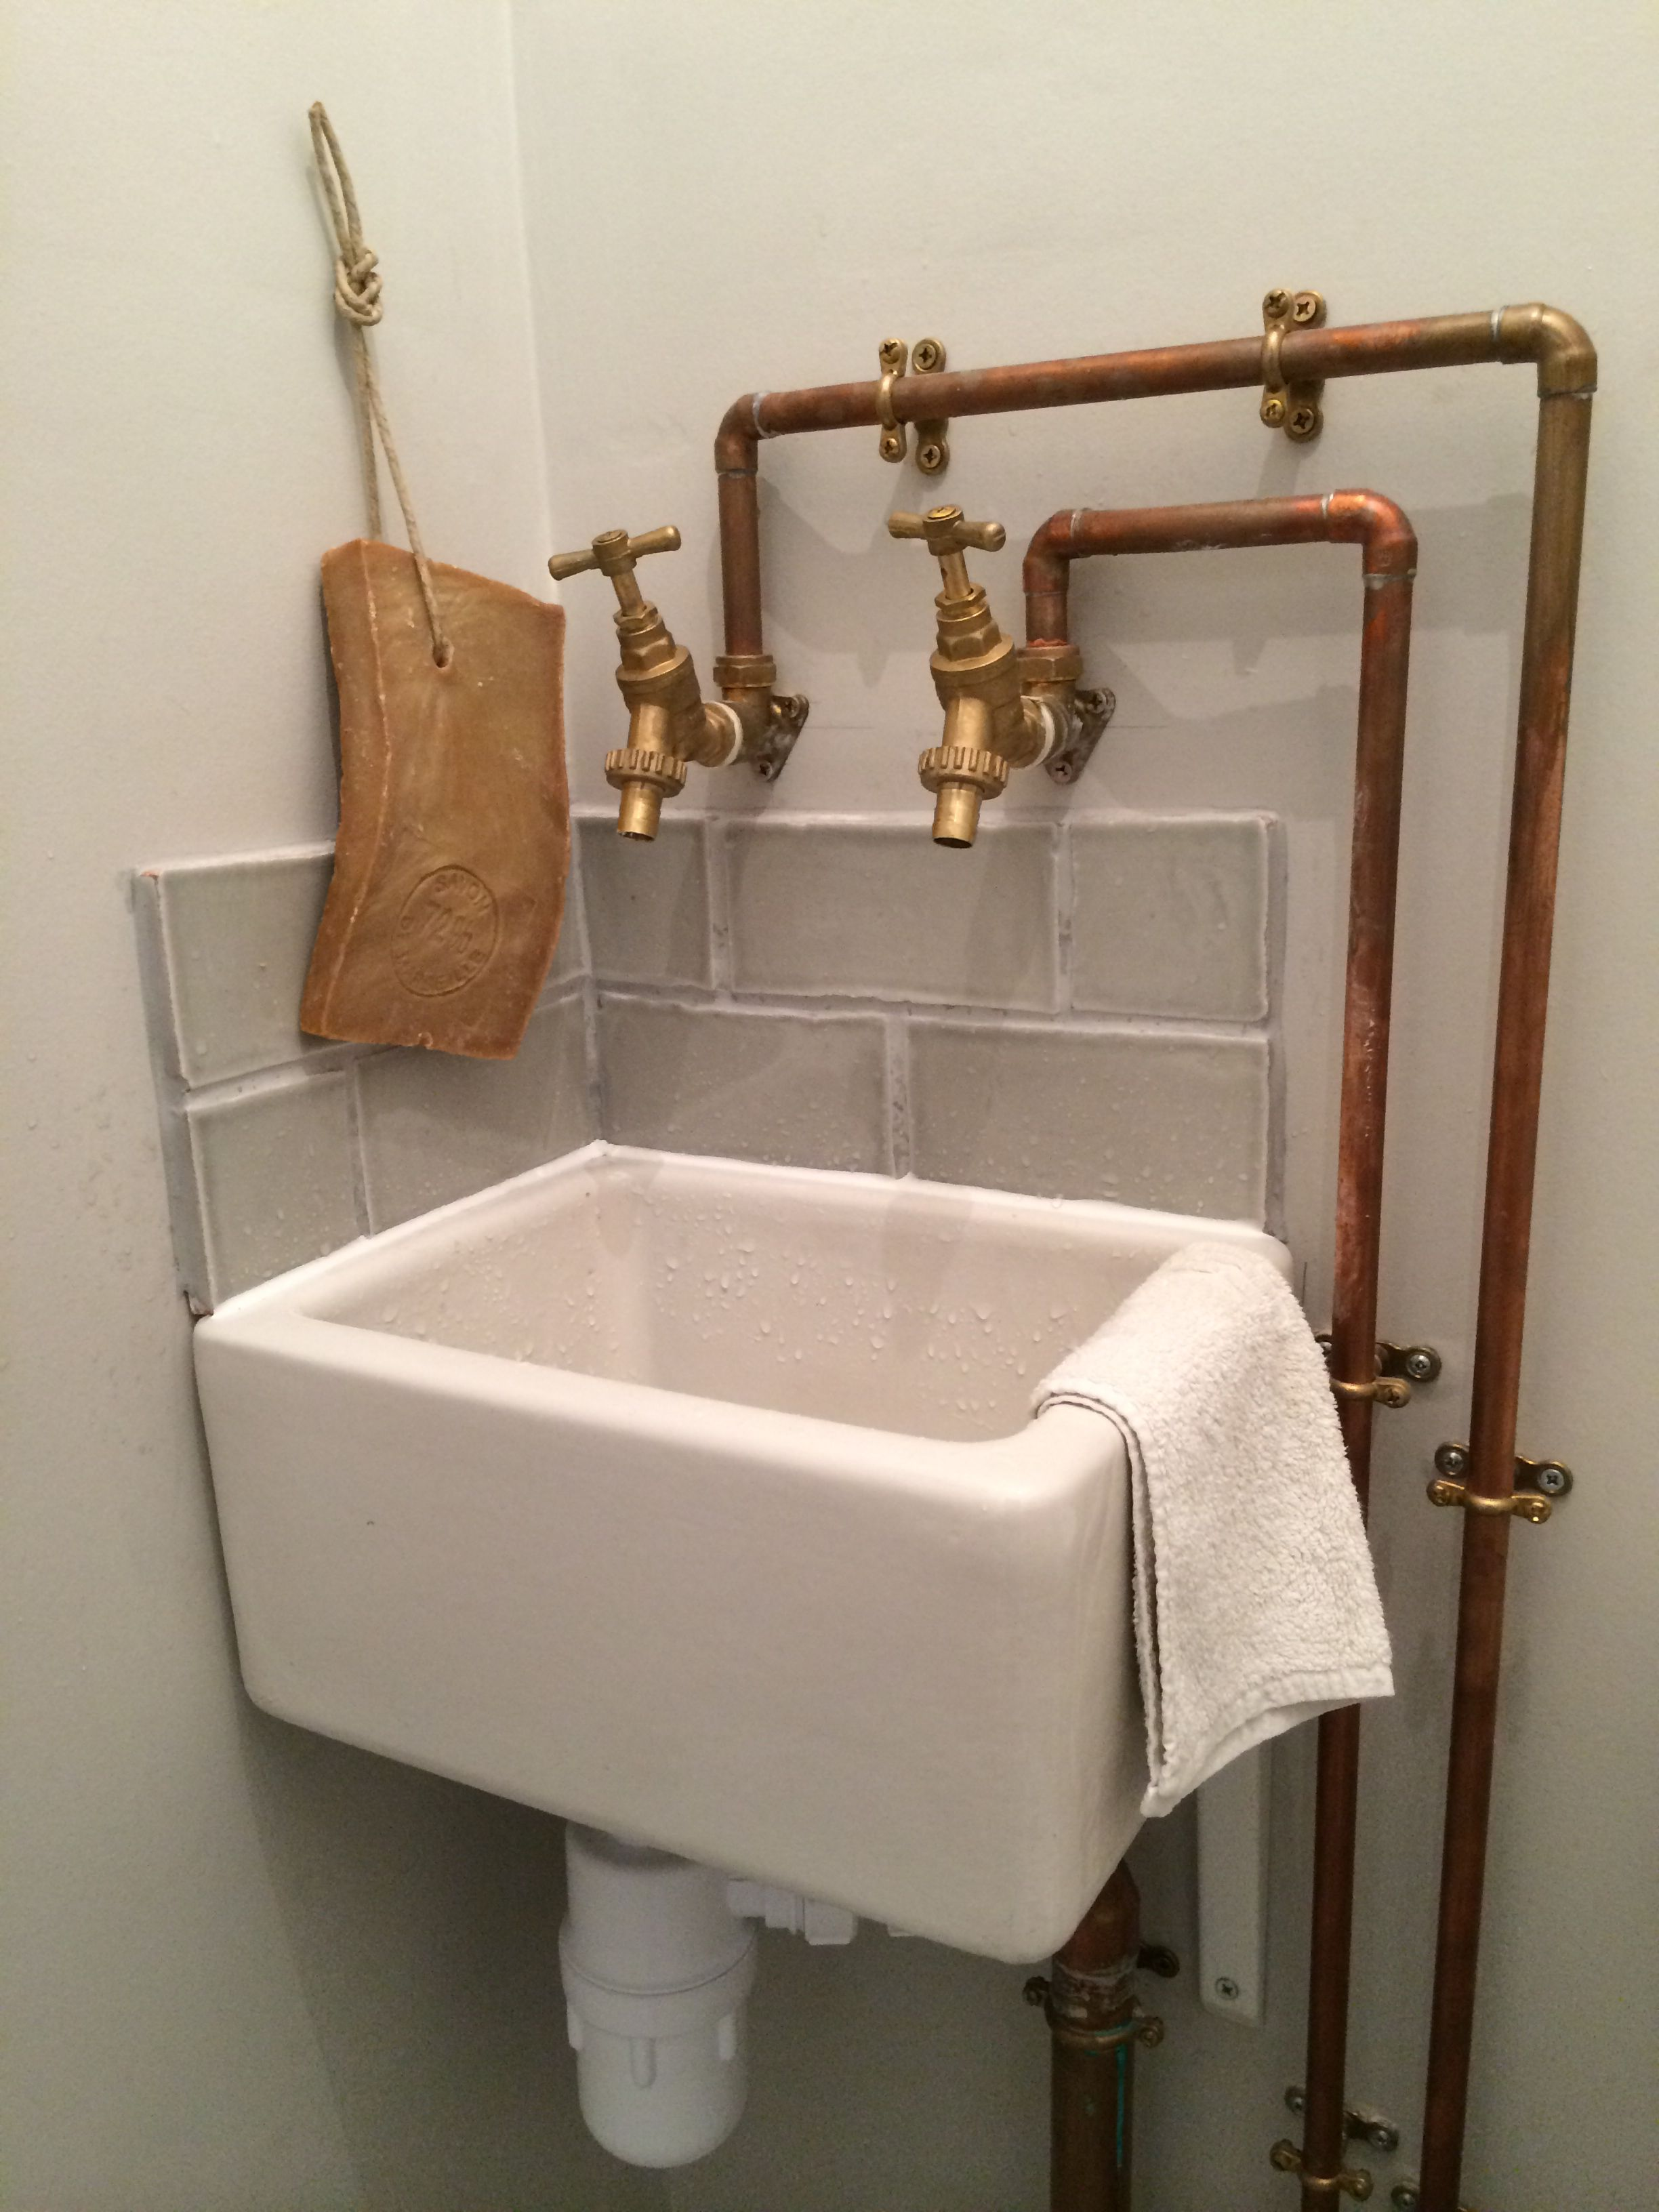 copper piping and baby belfast sink in cloakroom maybe a little copper piping and baby belfast sink in cloakroom maybe a little too rustic but i downstairs bathroomsmall